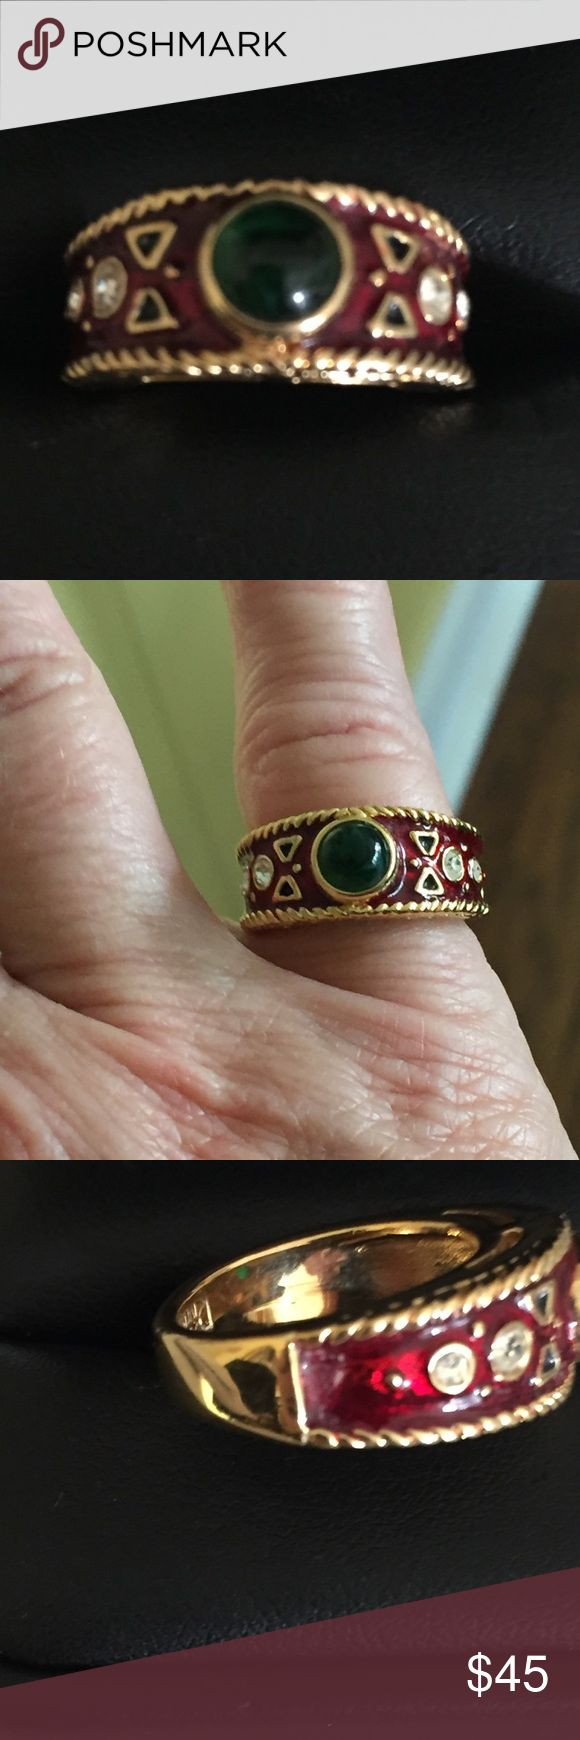 Joan Rivers Red Enameled Jade Ring Sz 6.5 Beautiful ring as pictured with red enamel rhinestones and faux jade. I am uncertain as to exact age. As pictured like new condition. Maker mark stamped in ring. Please if making offers keep in mind I pay seller fees have travel and shipping expenses and also purchase price for resale.  I try to price reasonably and offer bundle discount. Joan Rivers Jewelry Rings